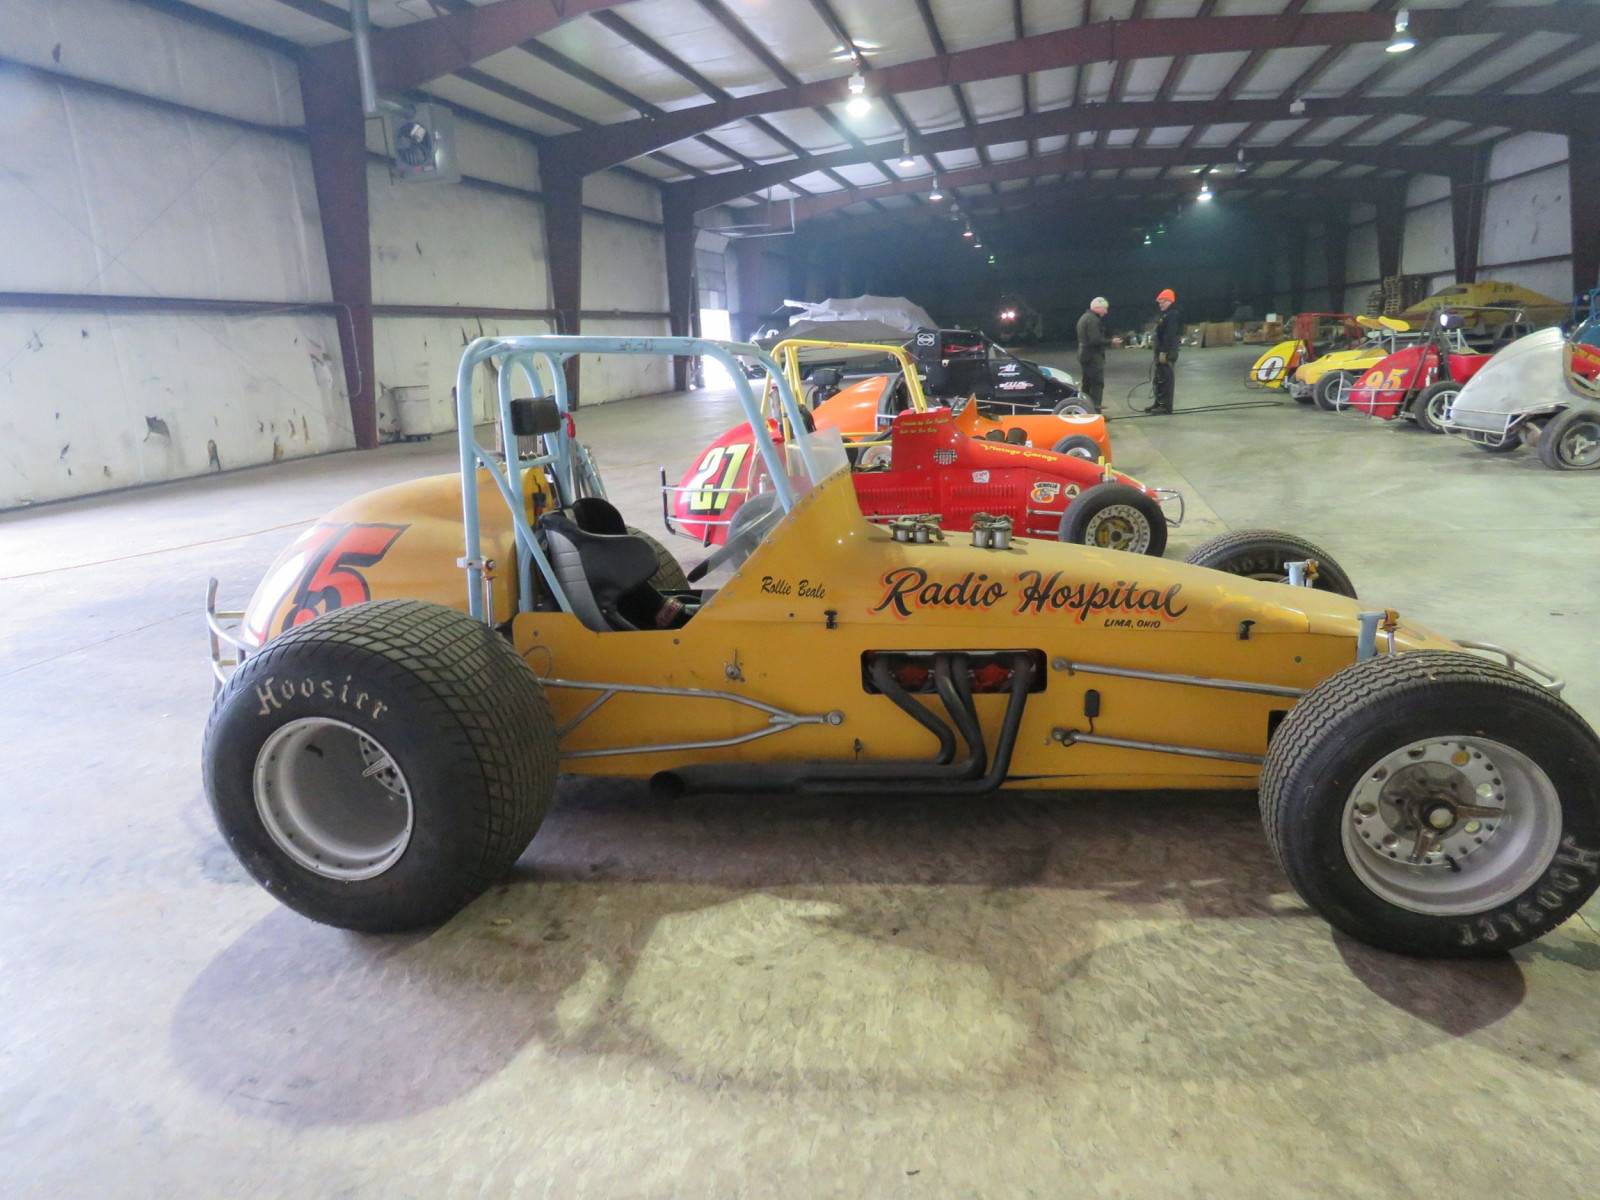 1972 fuel Injected Sprint Car - Image 4